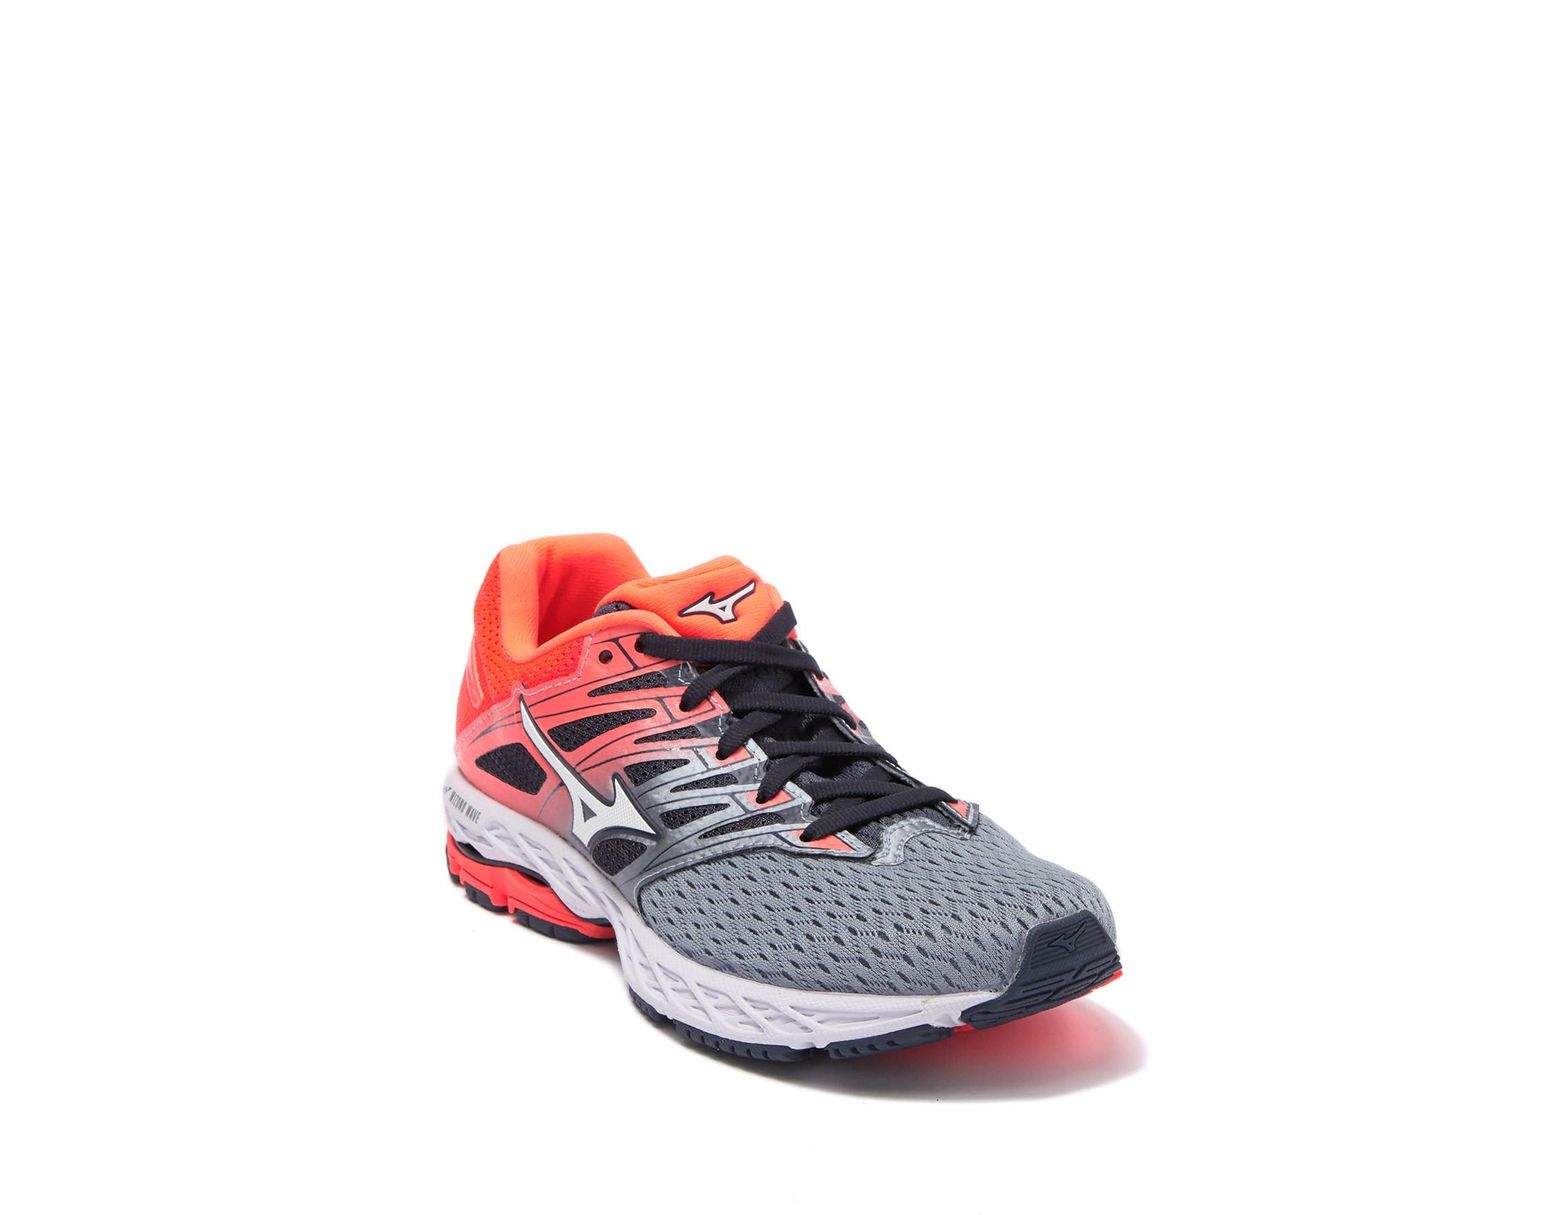 low priced 1a42f 743b6 Women's Wave Shadow 2 Running Shoe